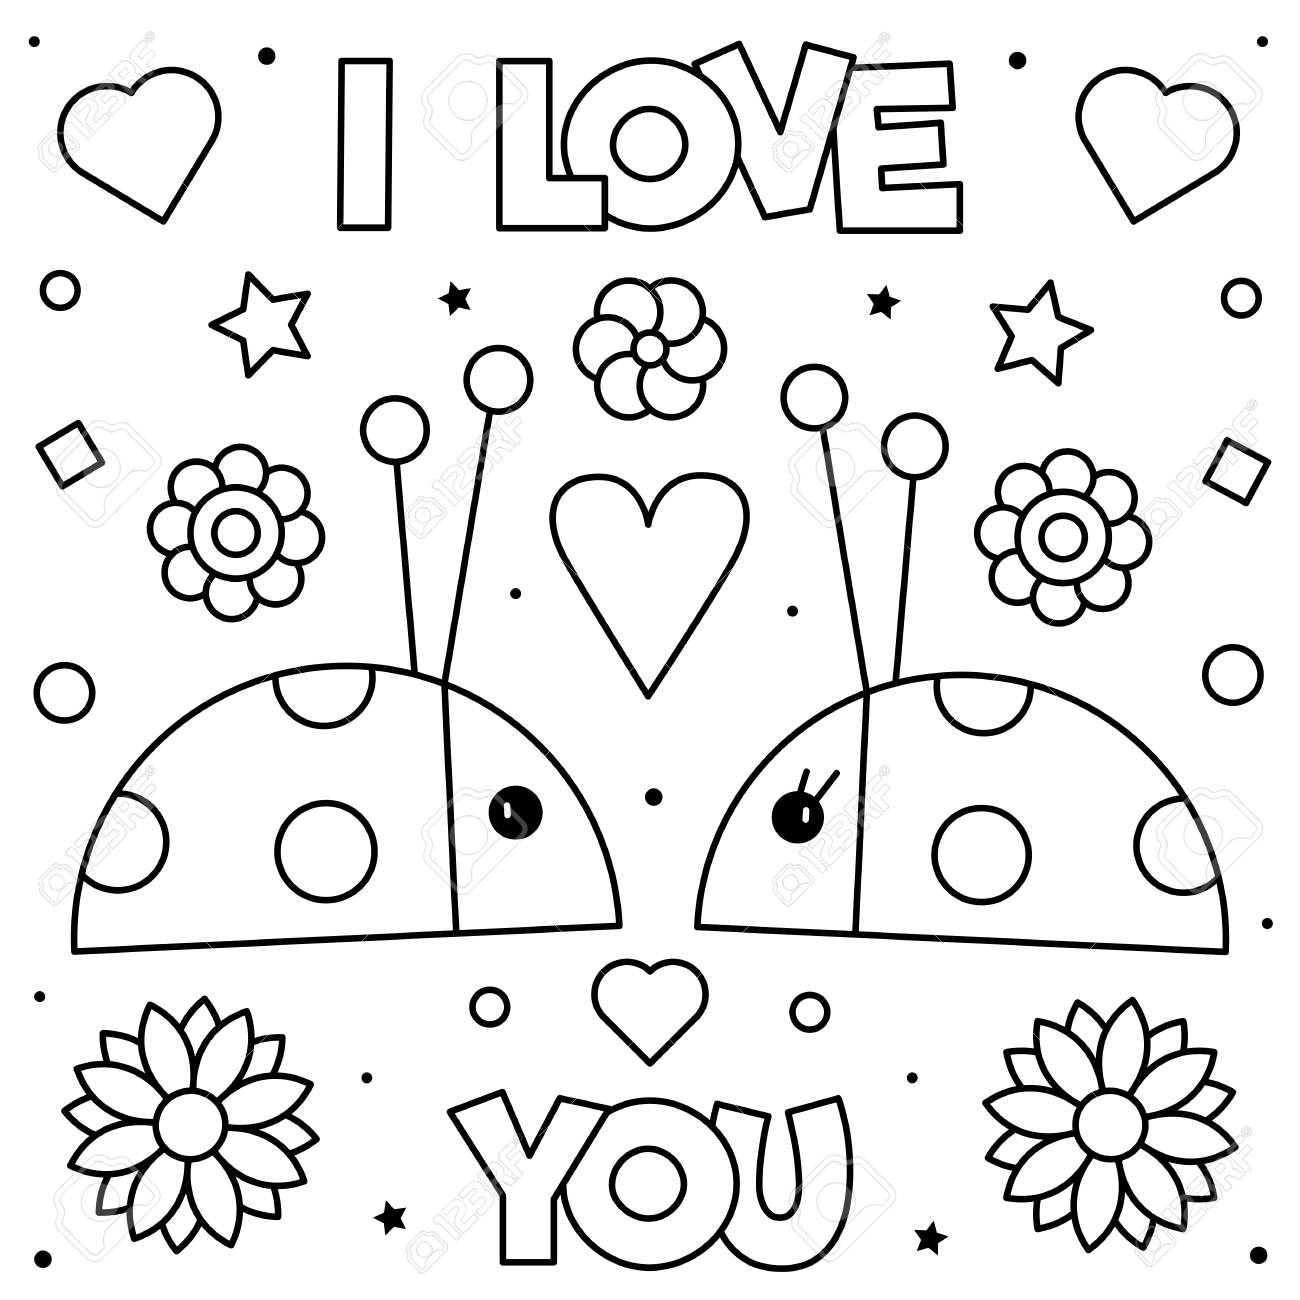 you coloring black and vector illustration of ladybirds royalty free vectors stock image coloring pages I Love You Coloring Page